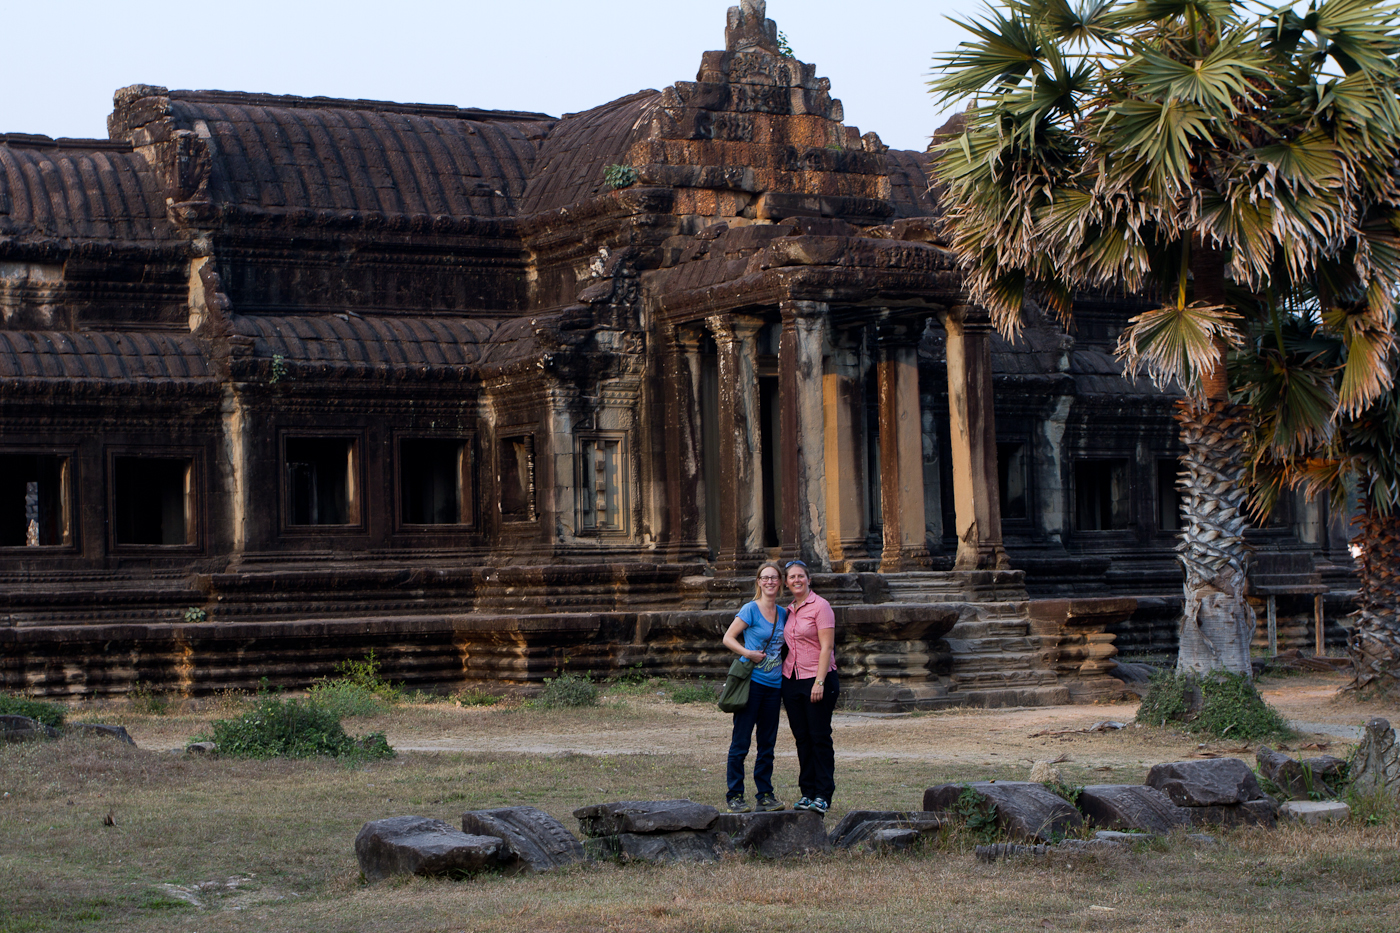 Natascha and Manu at Angkor Wat